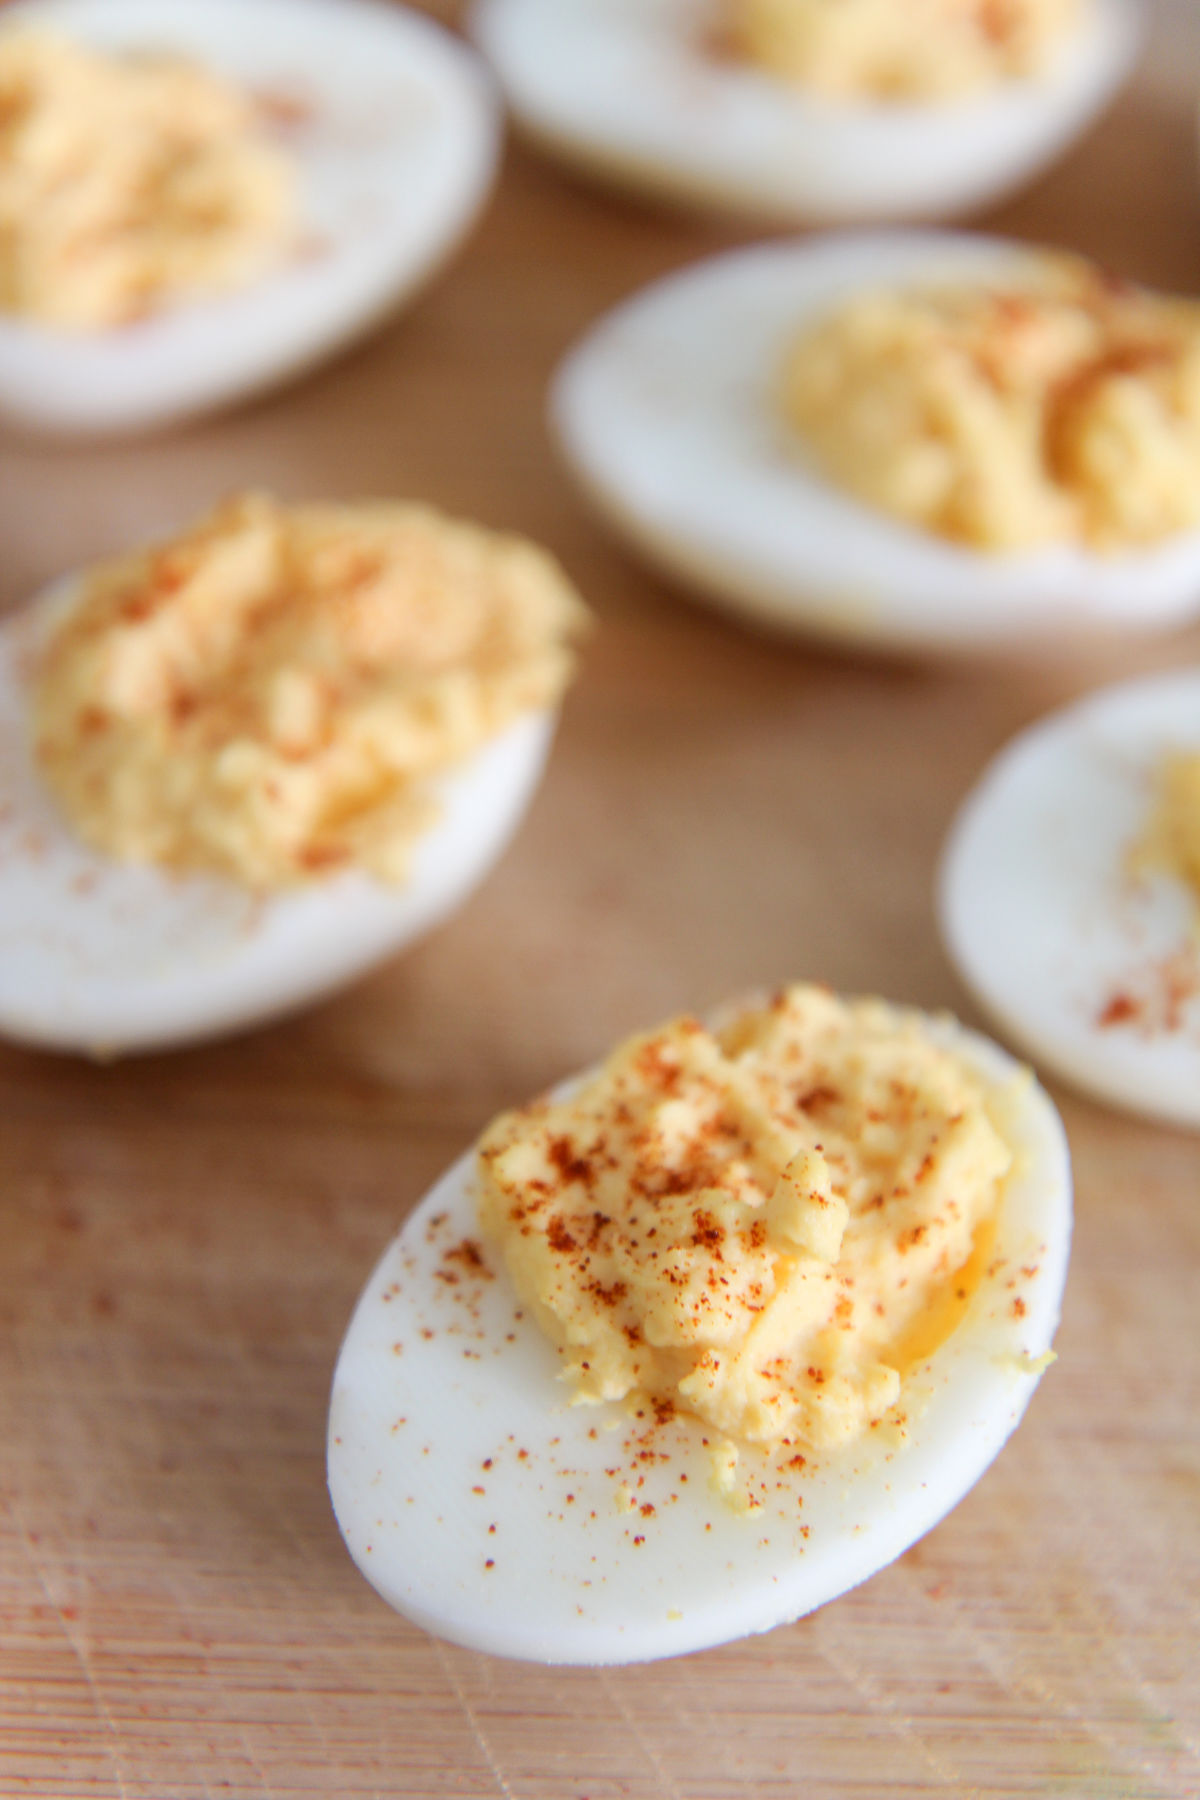 deviled eggs with paprika on a wooden board